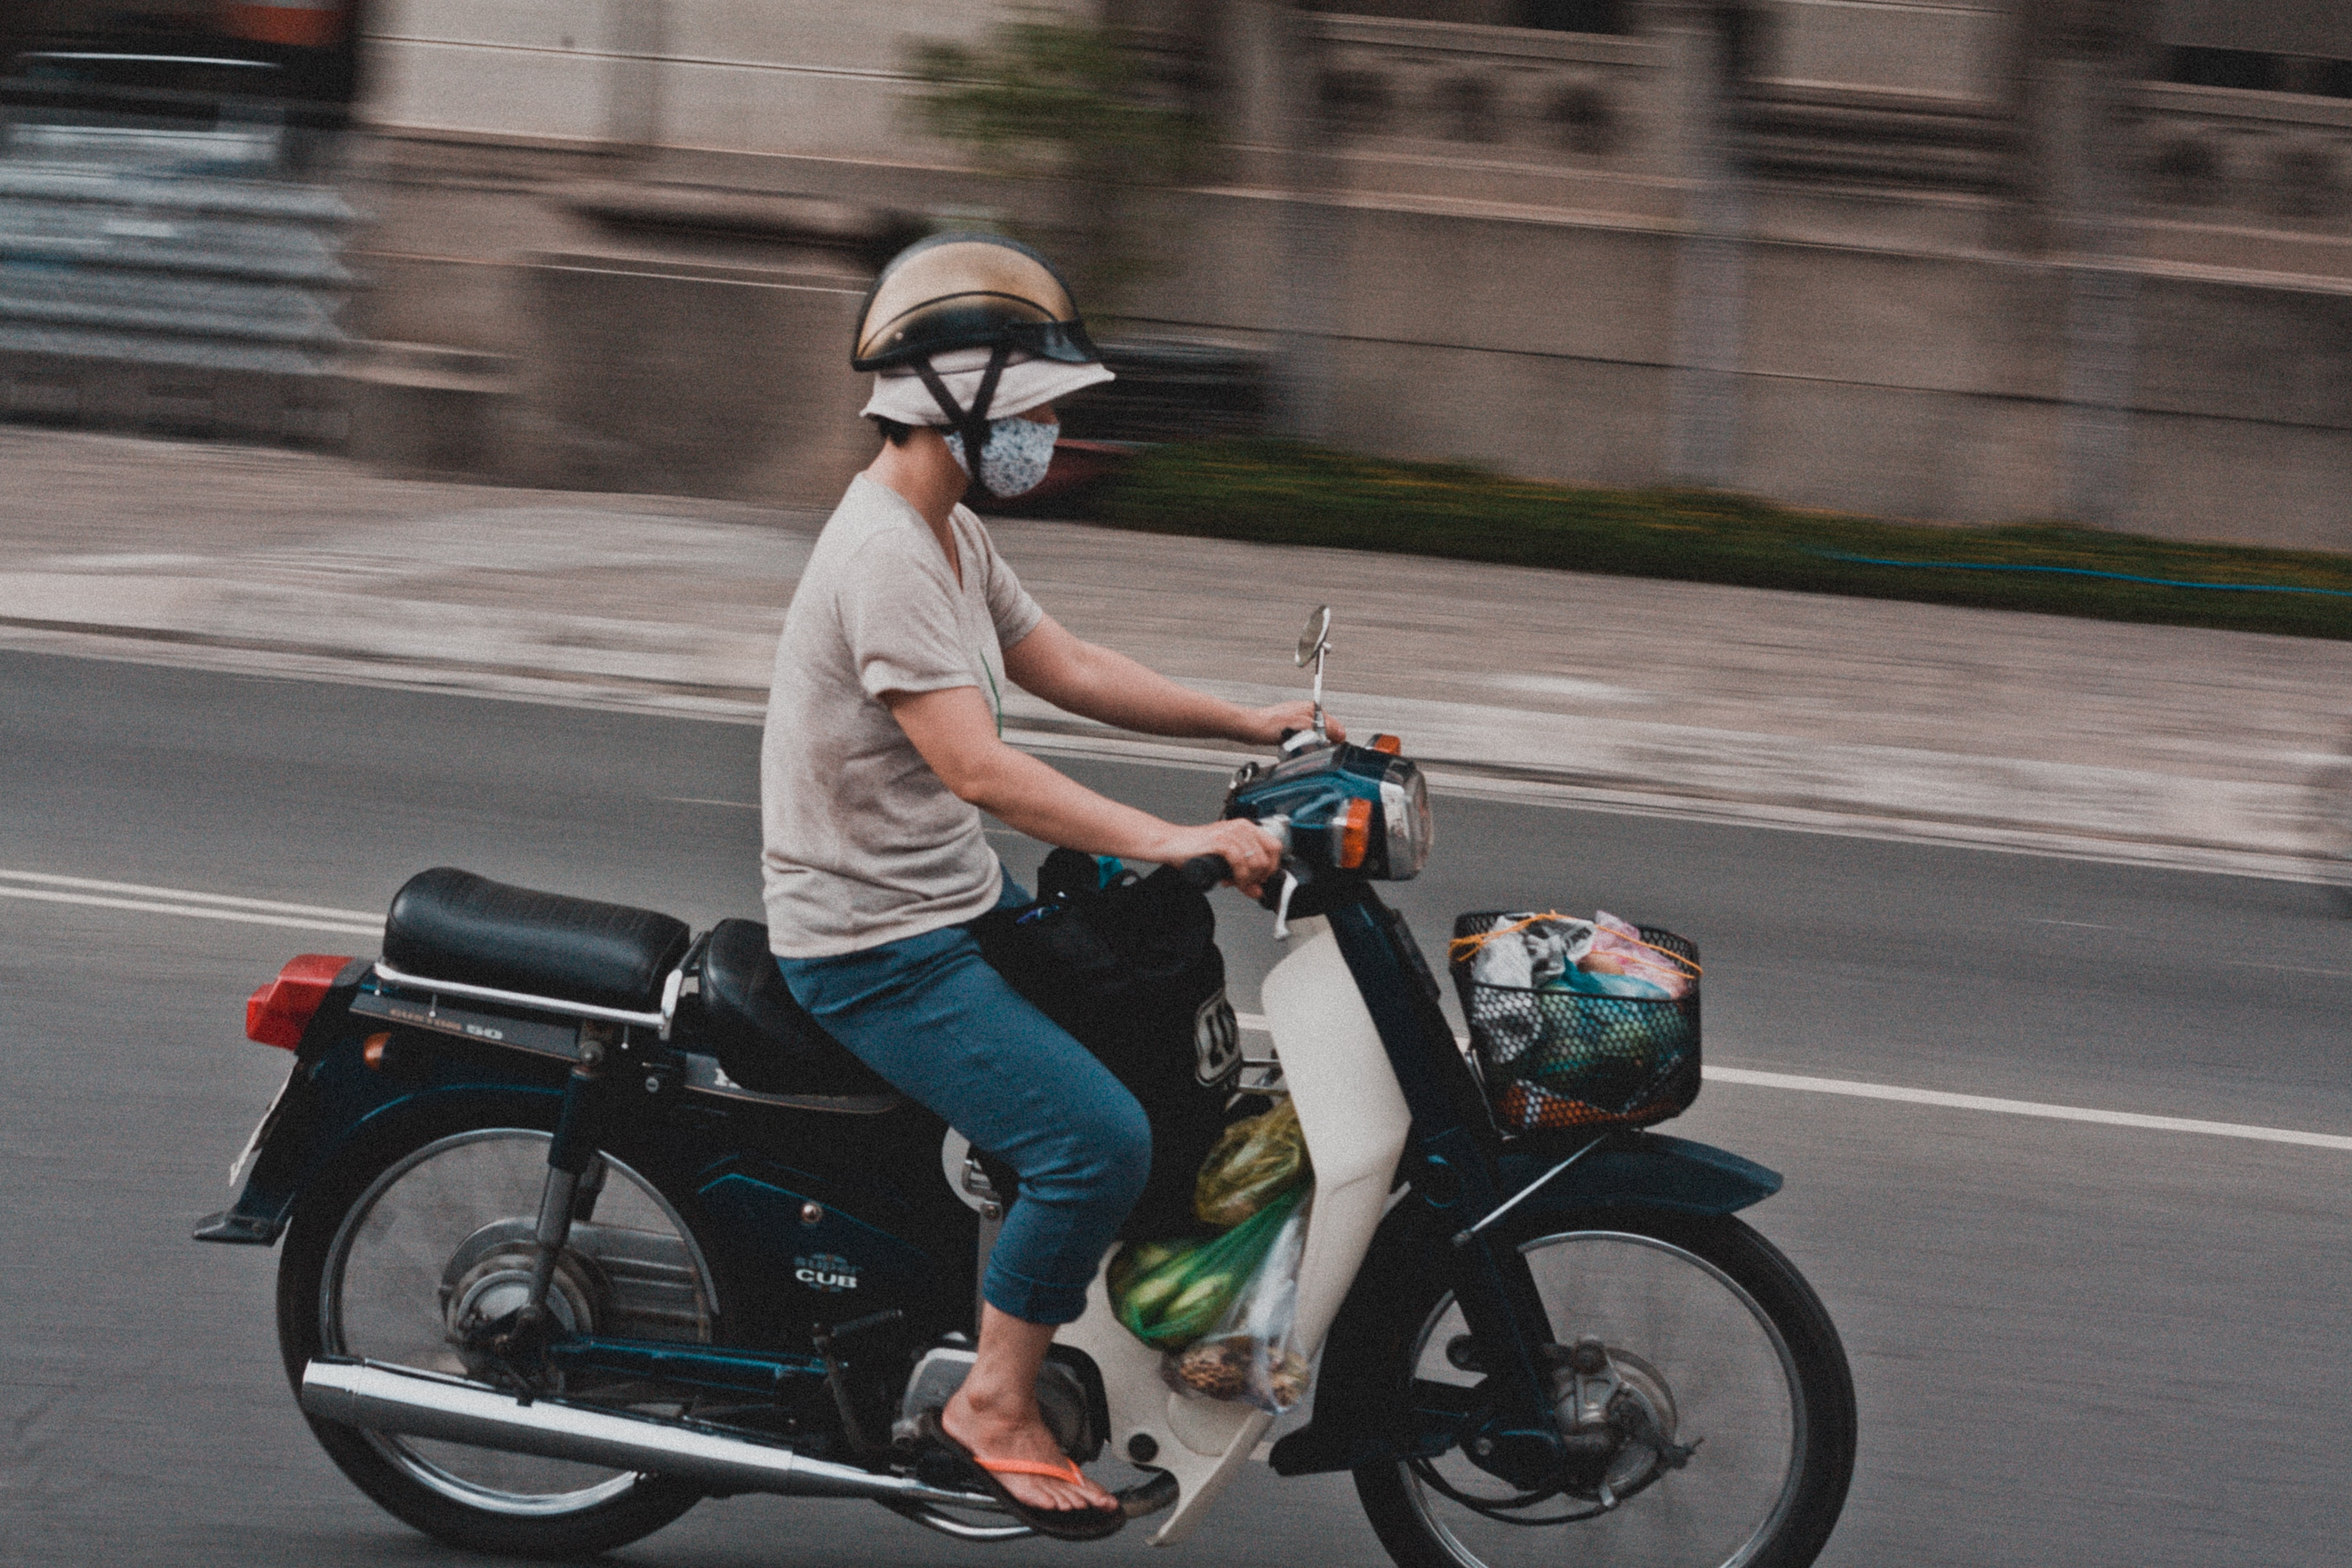 Man riding a motorcycle with grocery plastic bags while wearing a mouth mask and a hat